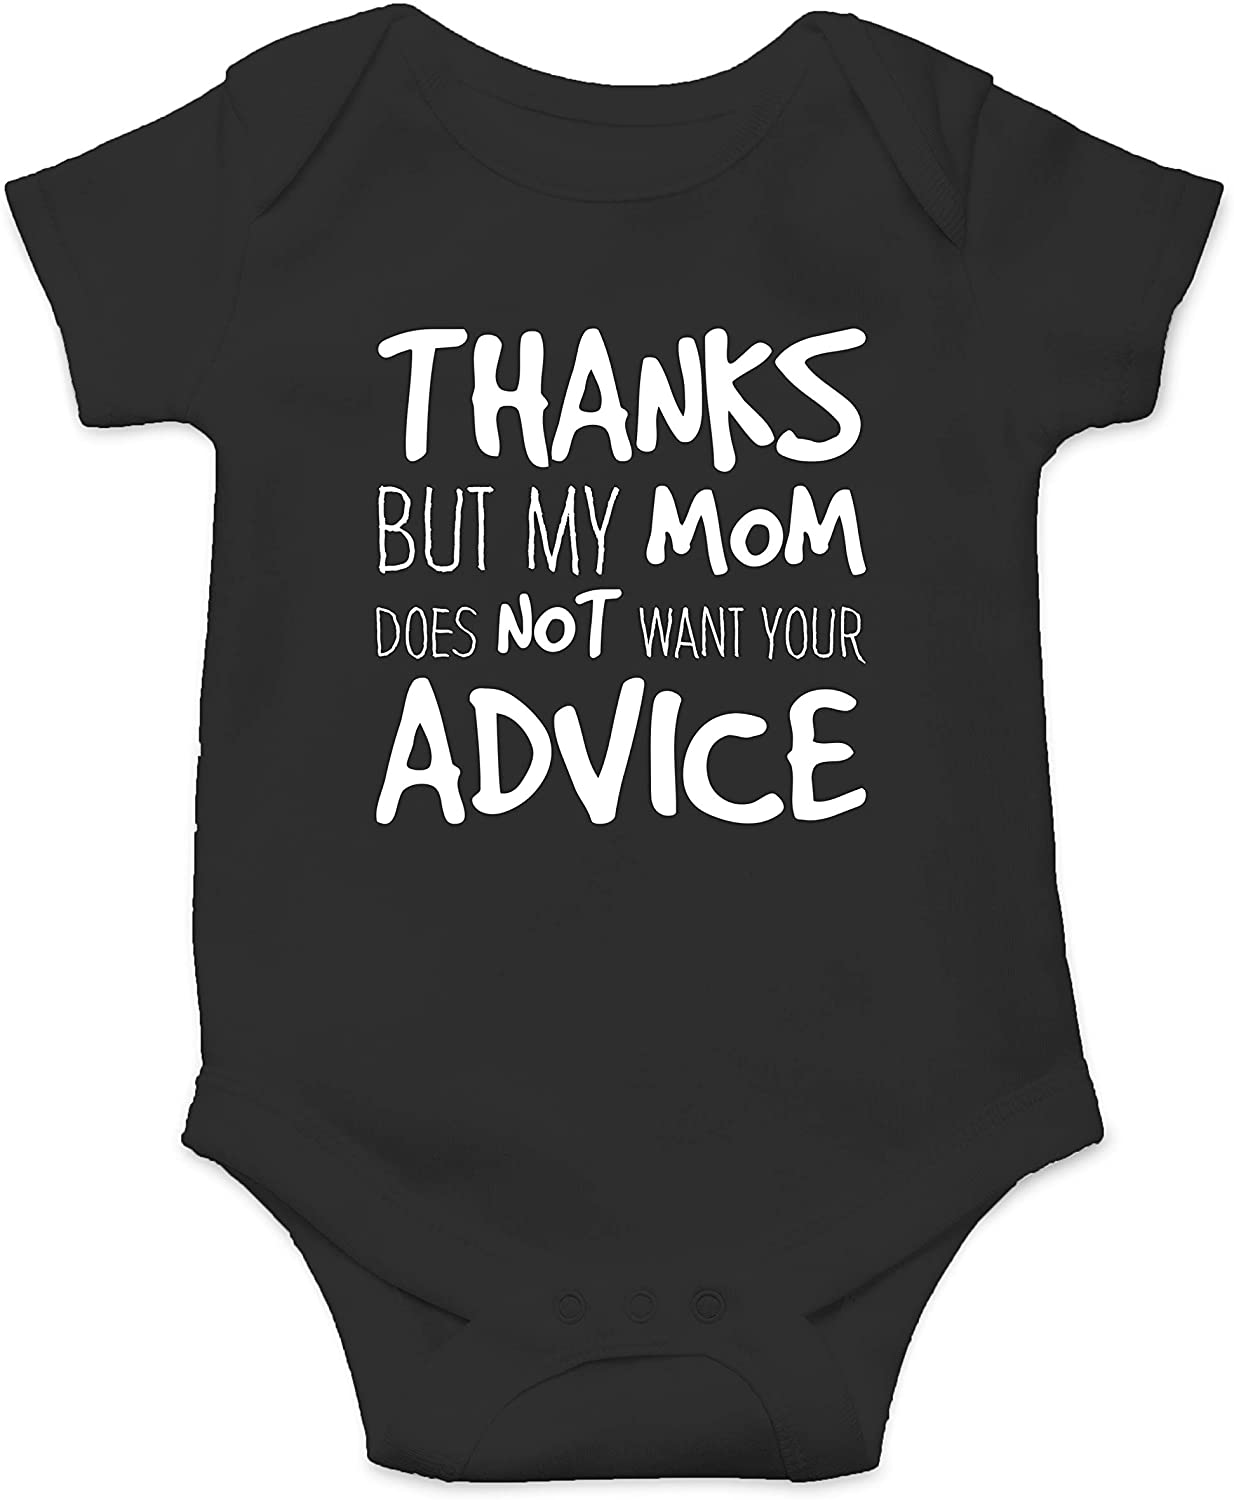 Thanks But My Mom Does Not Want Your Advice - Funny Sarcasm Baby Romper Toddler Bodysuit